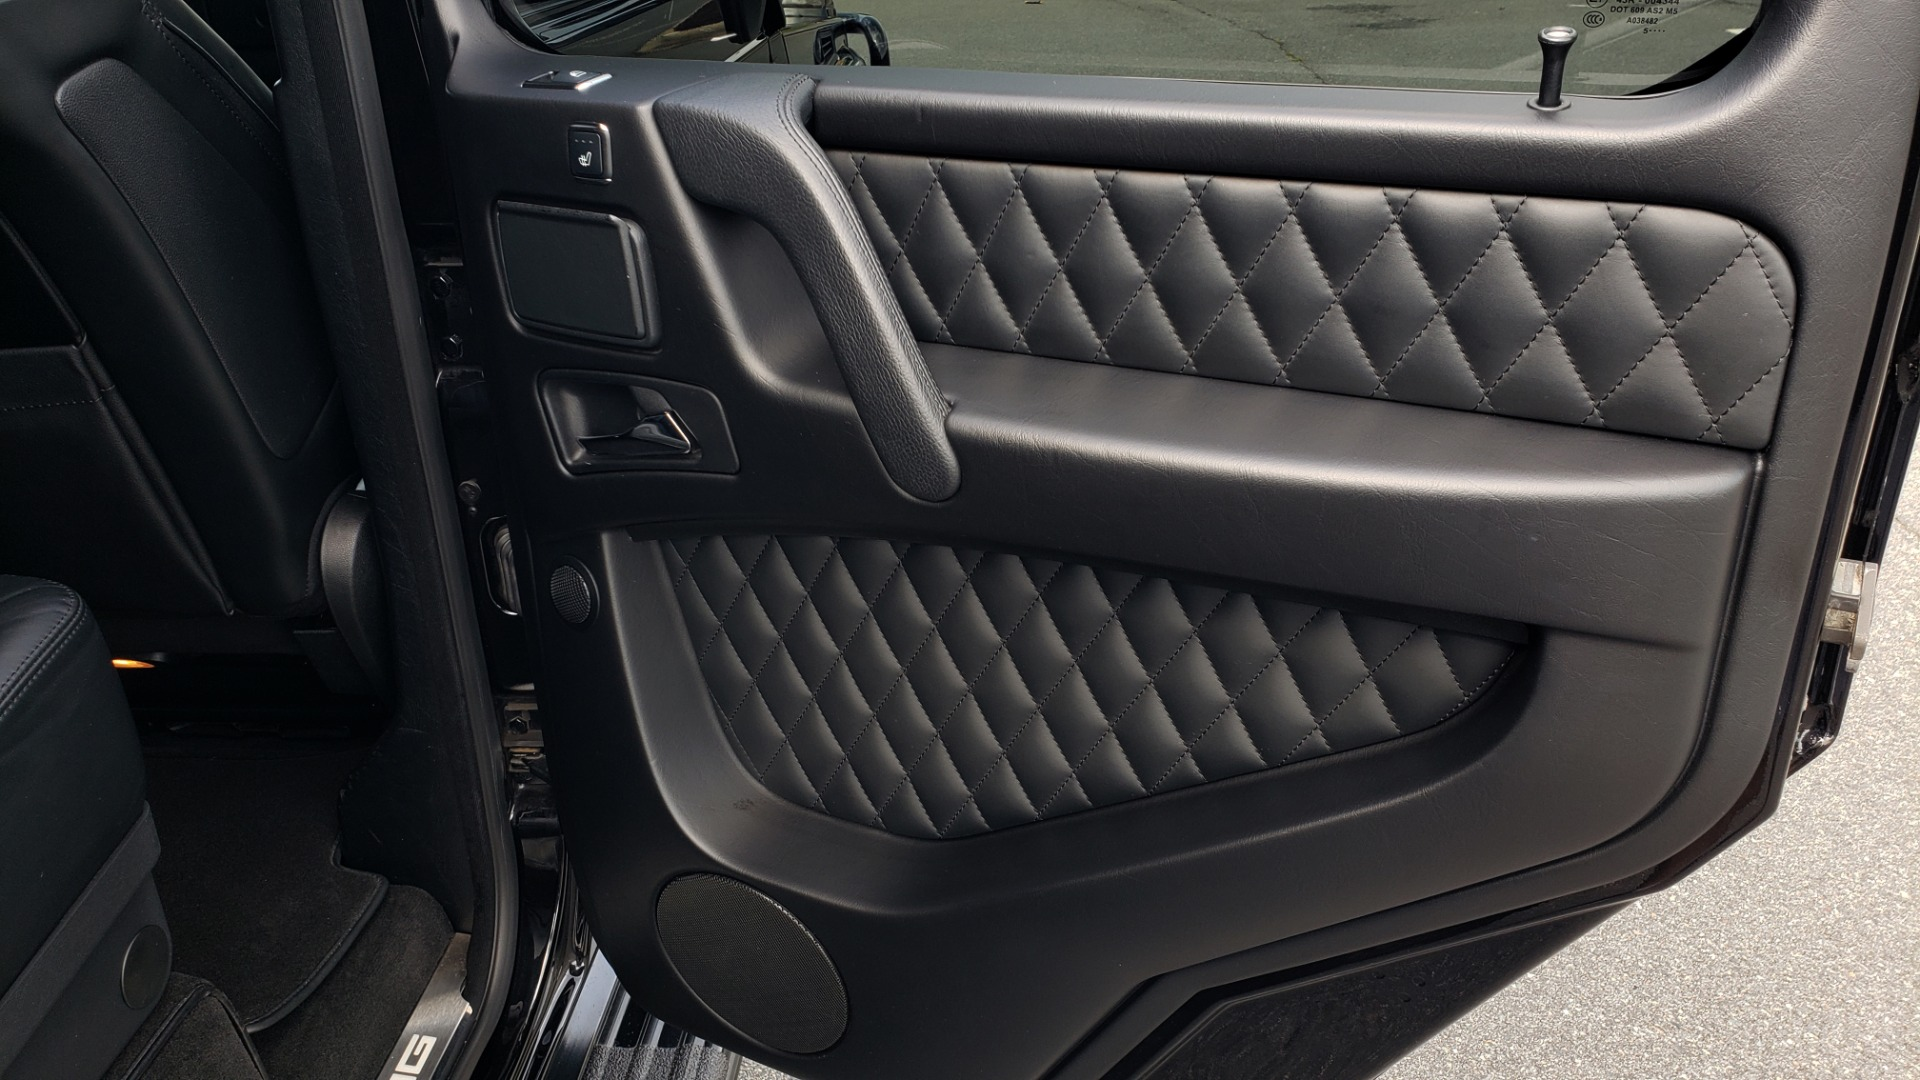 Used 2016 Mercedes-Benz G-CLASS AMG G 63 4MATIC / NAV / SUNROOF / H/K SND / ENT SYS / REARVIEW for sale $99,000 at Formula Imports in Charlotte NC 28227 58